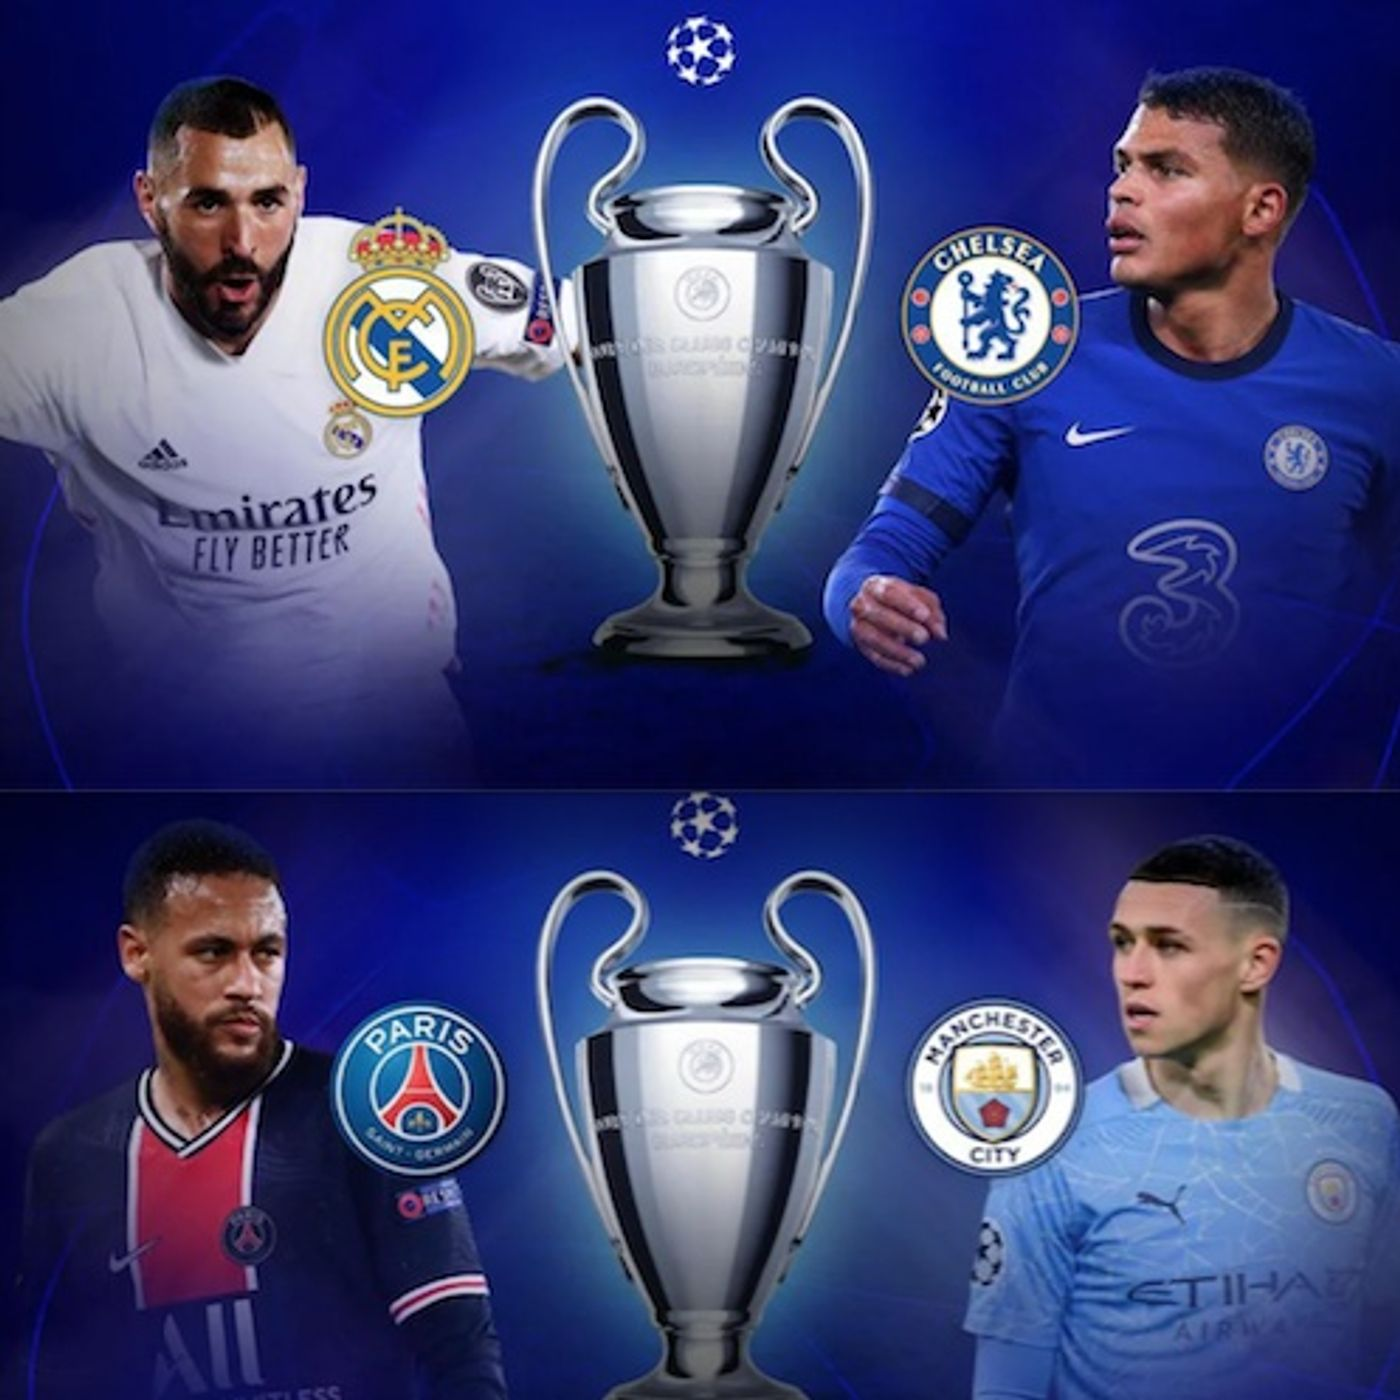 UEFA Champions League & Europa League Semi-finals: Betting Previews & Official Plays for the 1st Legs (04/27 - 04/29)